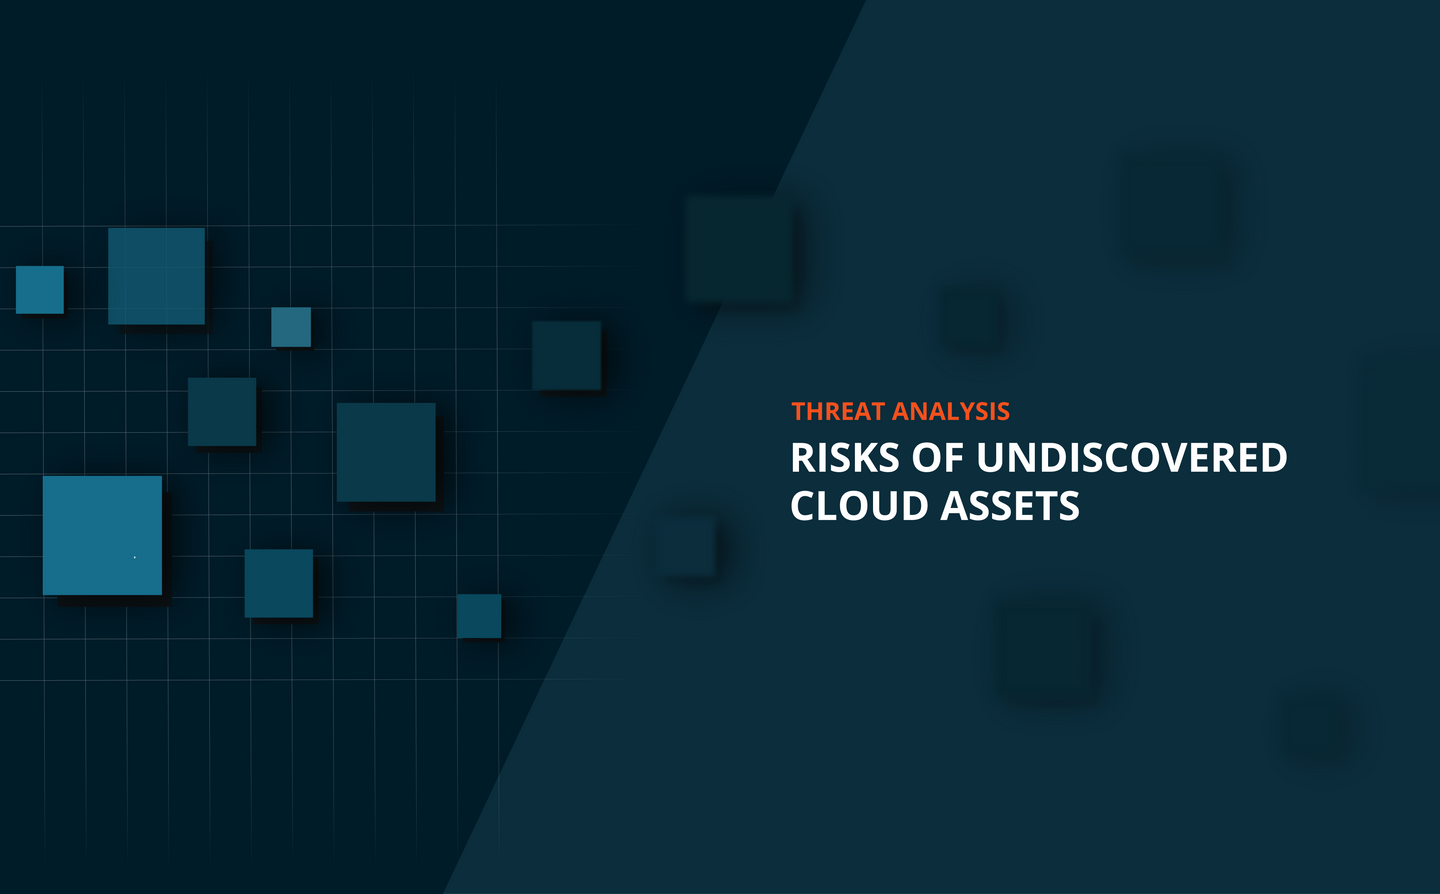 3 ways undiscovered cloud assets put your organization at risk